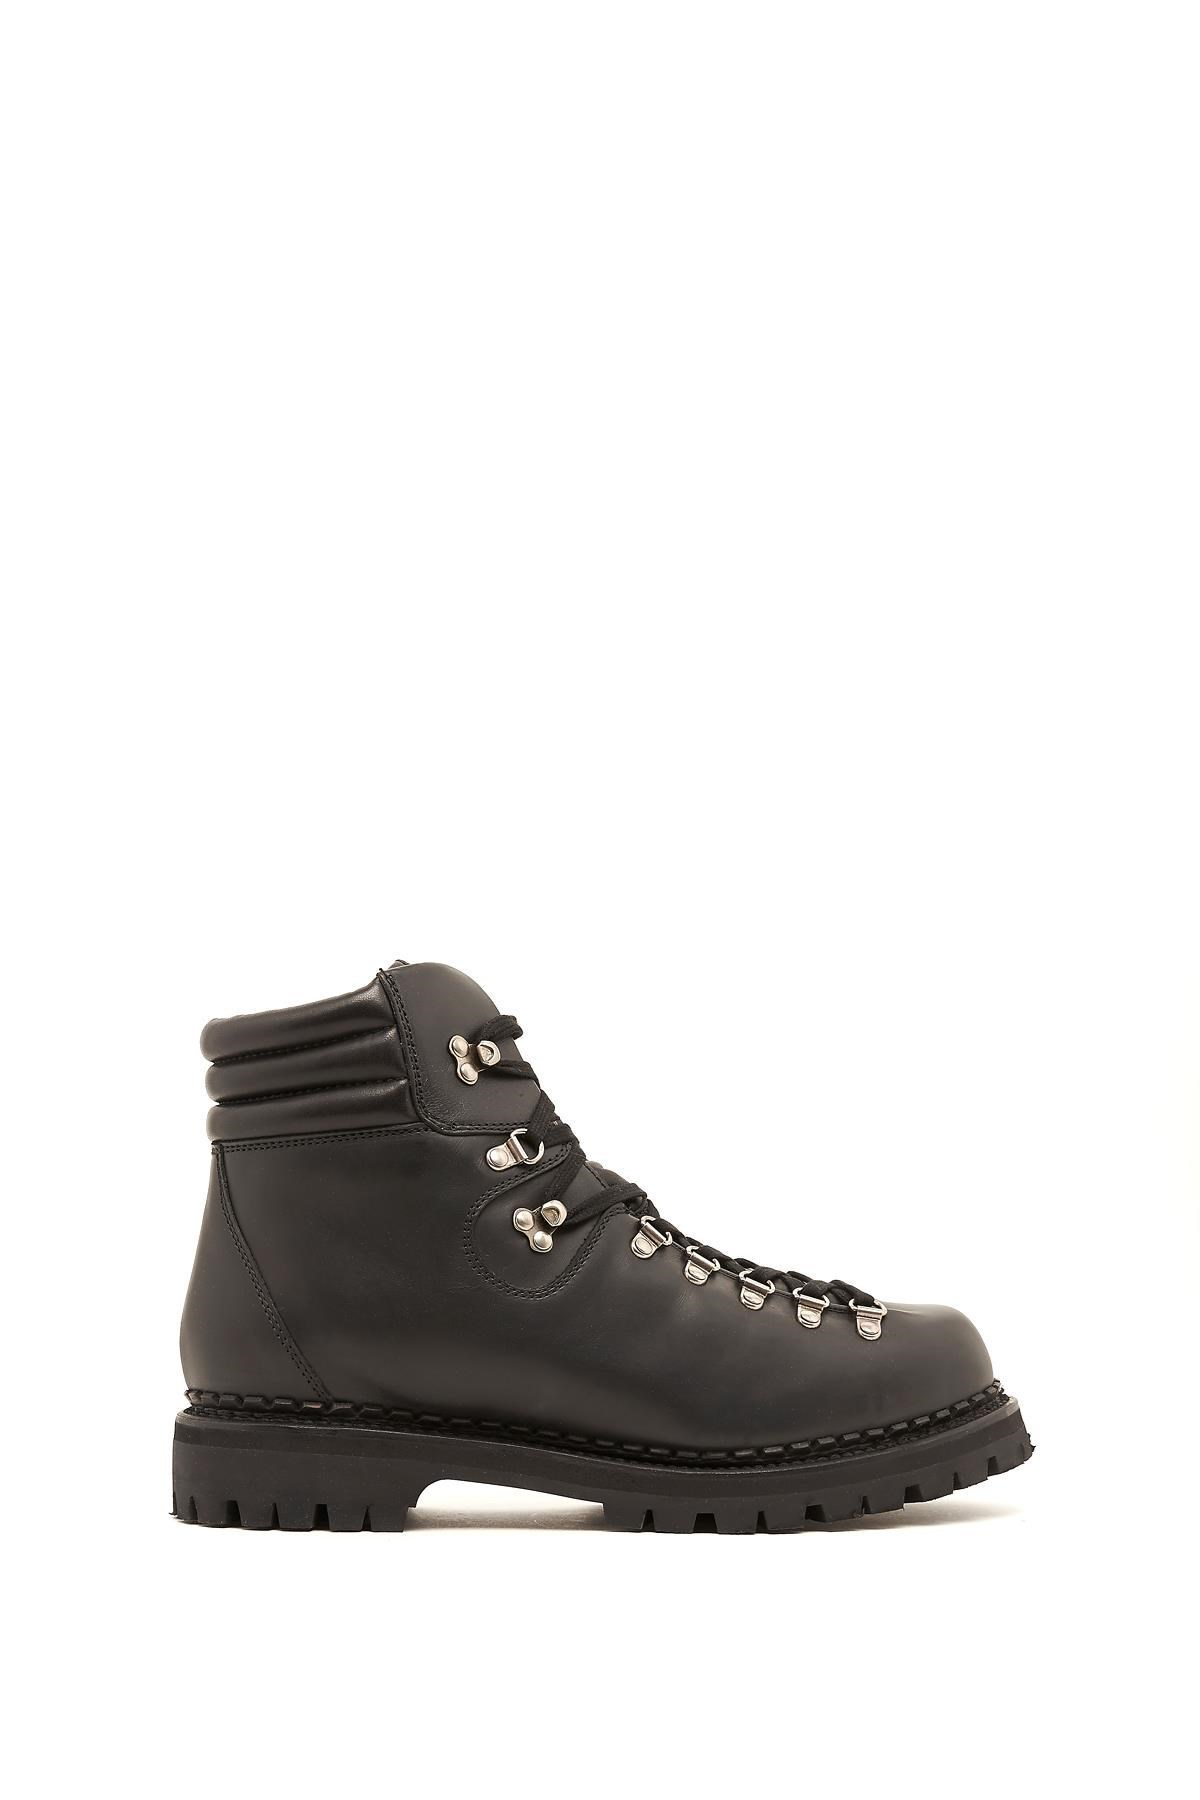 【グッチ】Calf Leather Laced Up Trekking Boots ブーツ